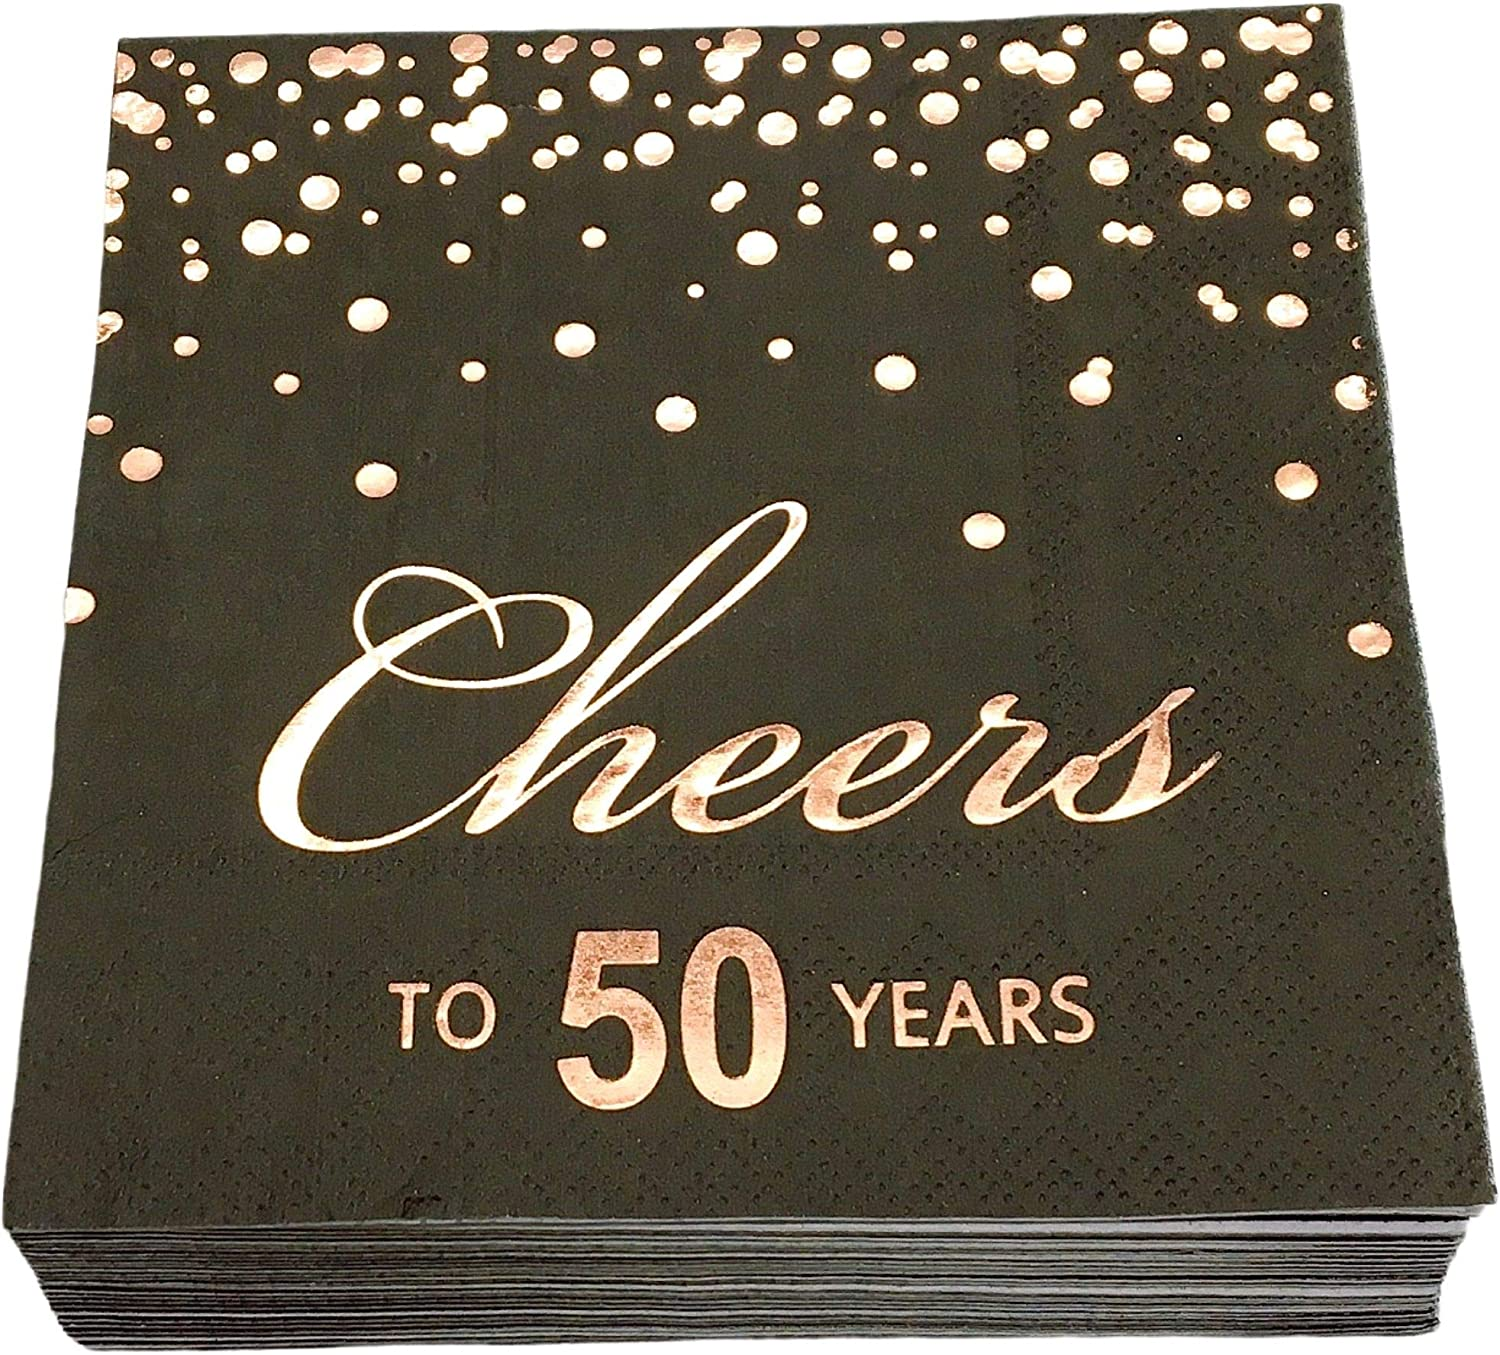 Rose Gold Foil Cocktail Napkins with Cheer 50 Years | Folded 5 x 5 Inches Disposable Party Napkins | 3-Ply Paper Beverage Napkins for 50th Birthday Decorations, Wedding Anniversary, Retirement, Black